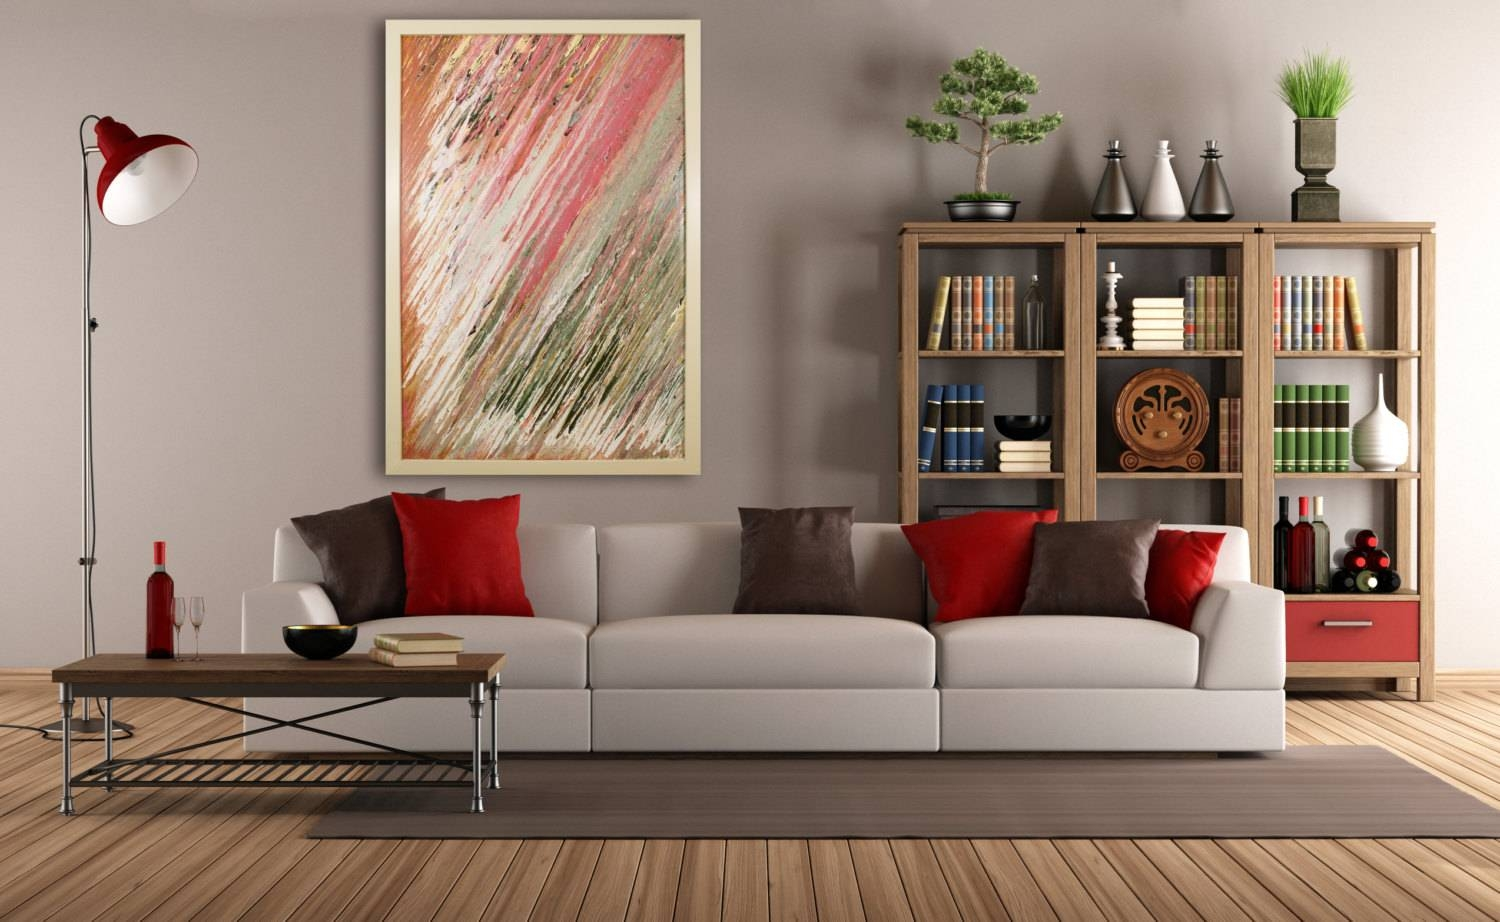 Extra Large Wall Art Original Abstract Glass Art Deco Within Current Large Contemporary Wall Art (View 12 of 20)